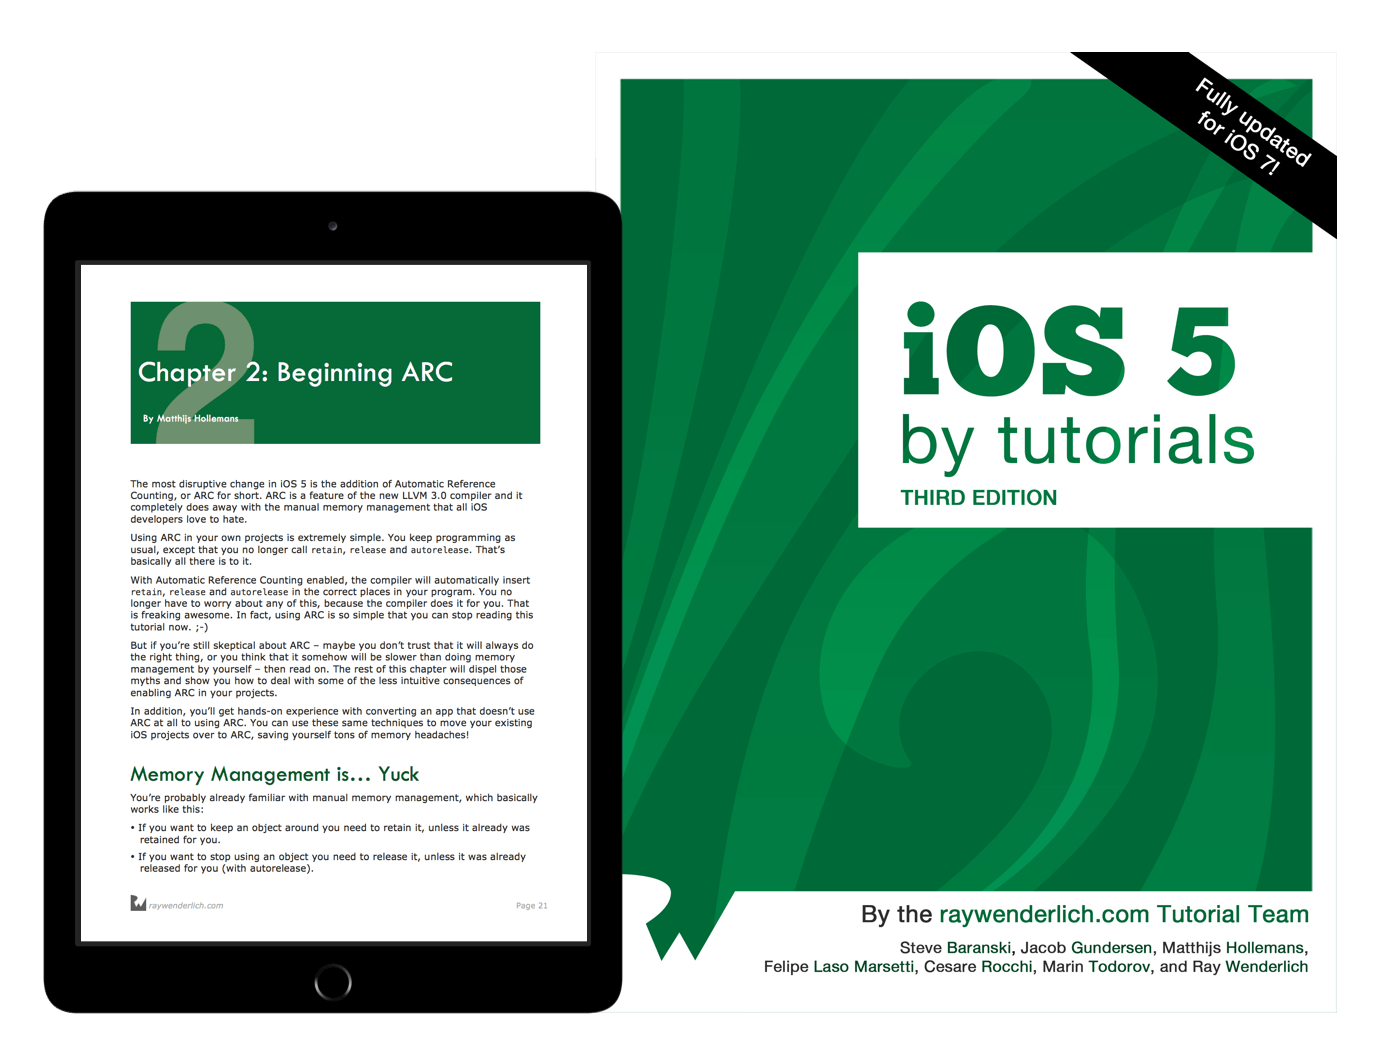 iOS 5 by Tutorials book cover